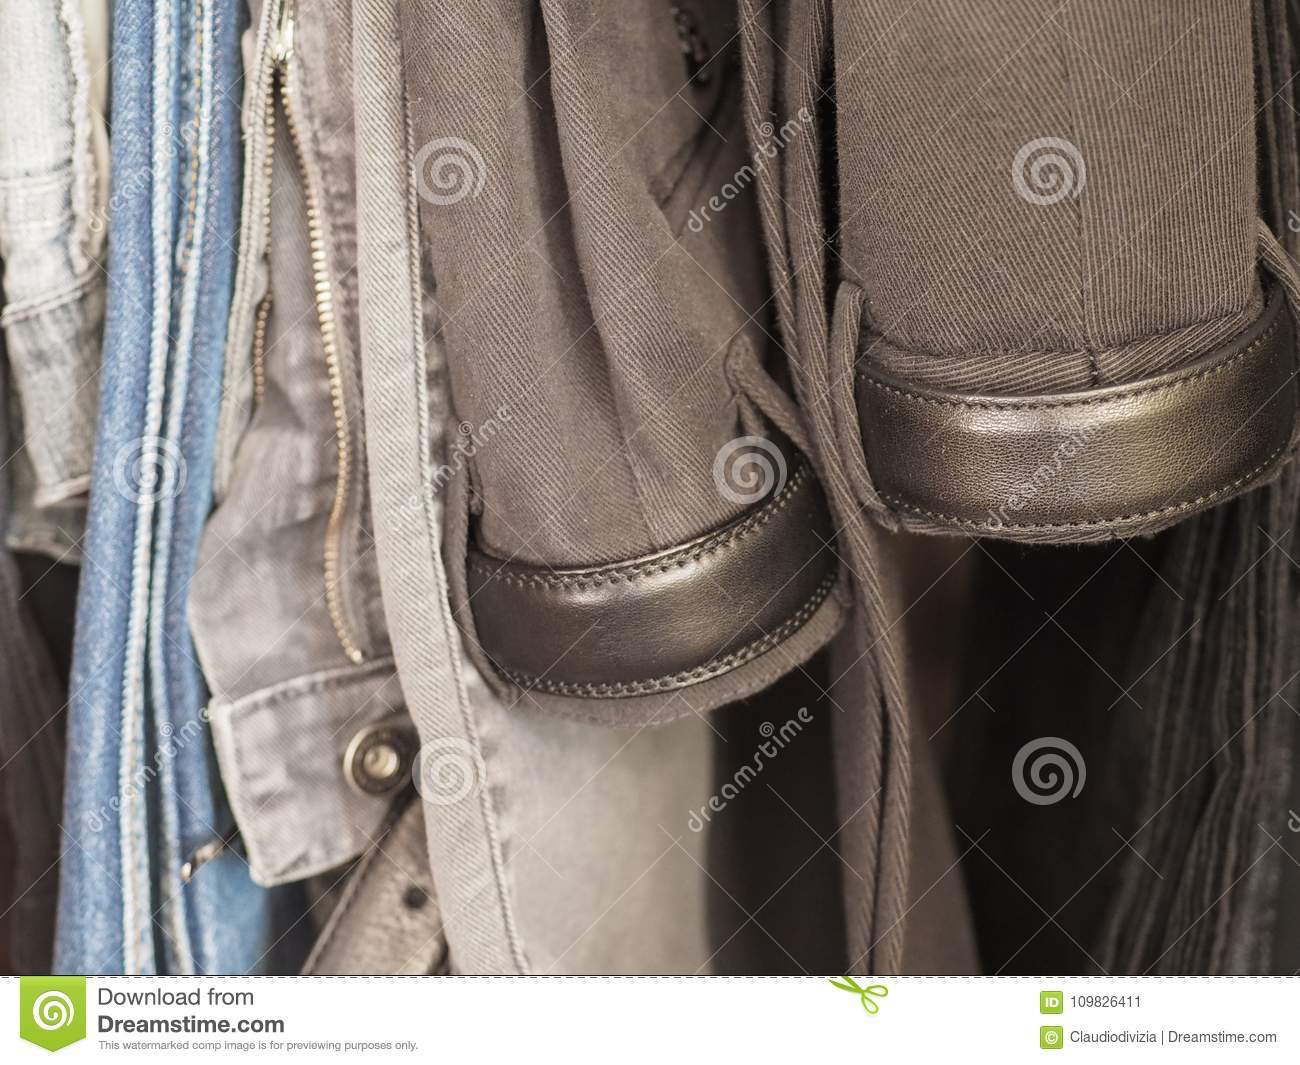 trousers in a closet